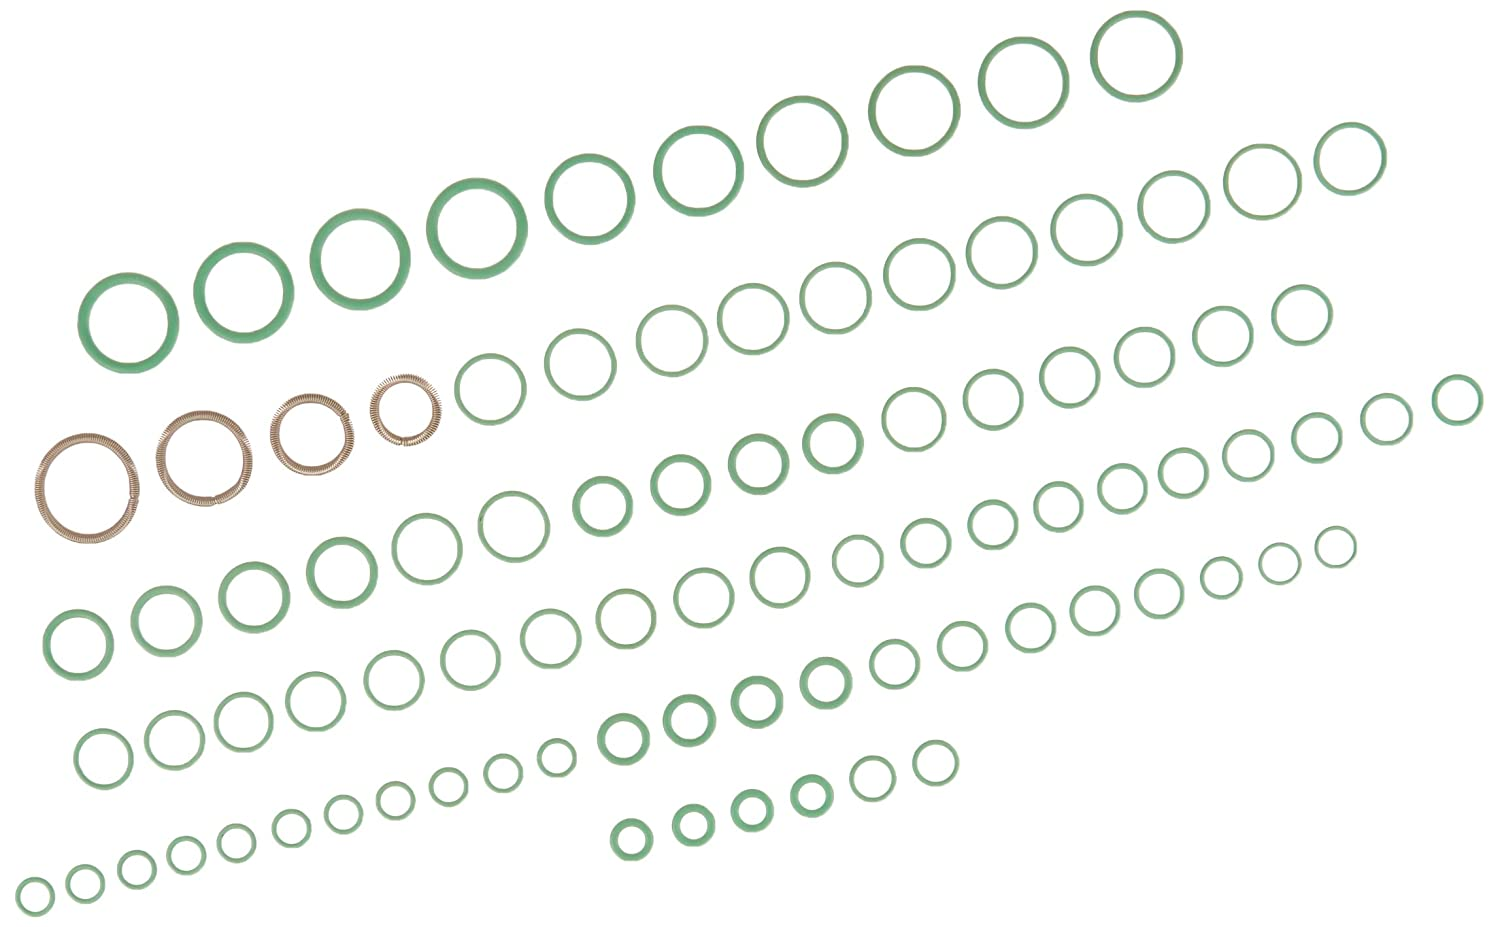 Four Seasons 26724 O-Ring & Gasket Air Conditioning System Seal Kit